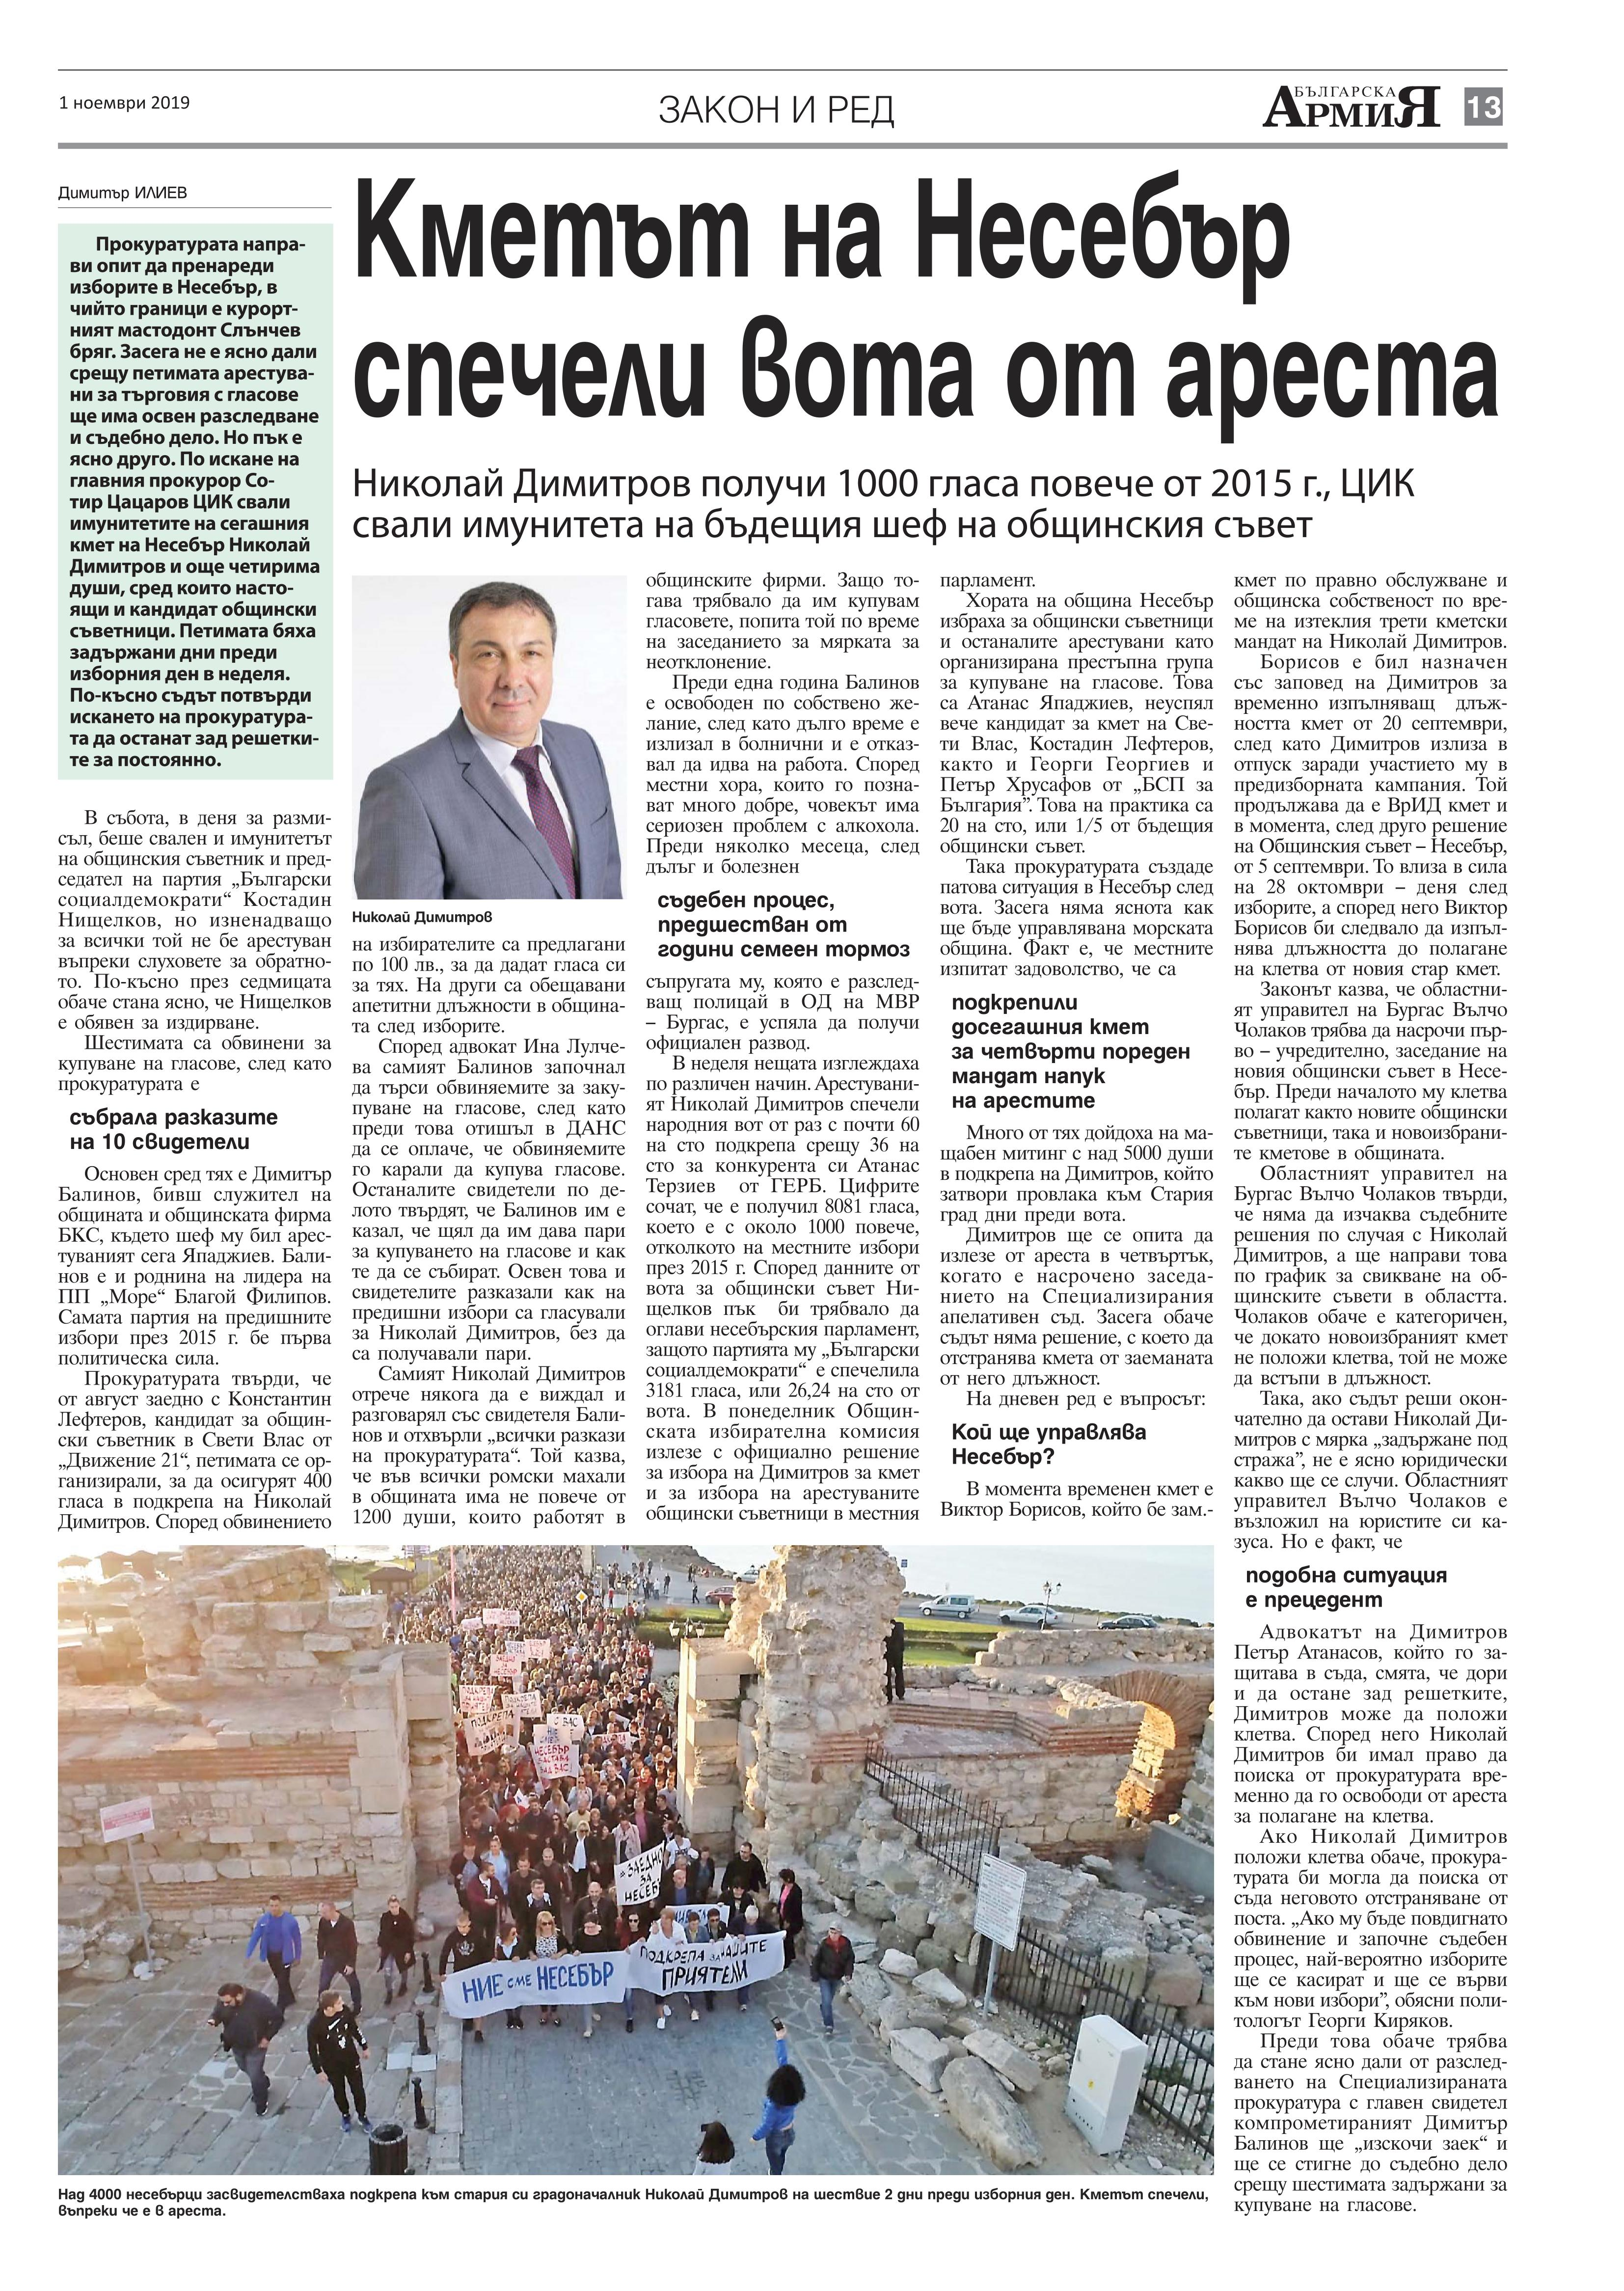 https://armymedia.bg/wp-content/uploads/2015/06/13.page1_-114.jpg